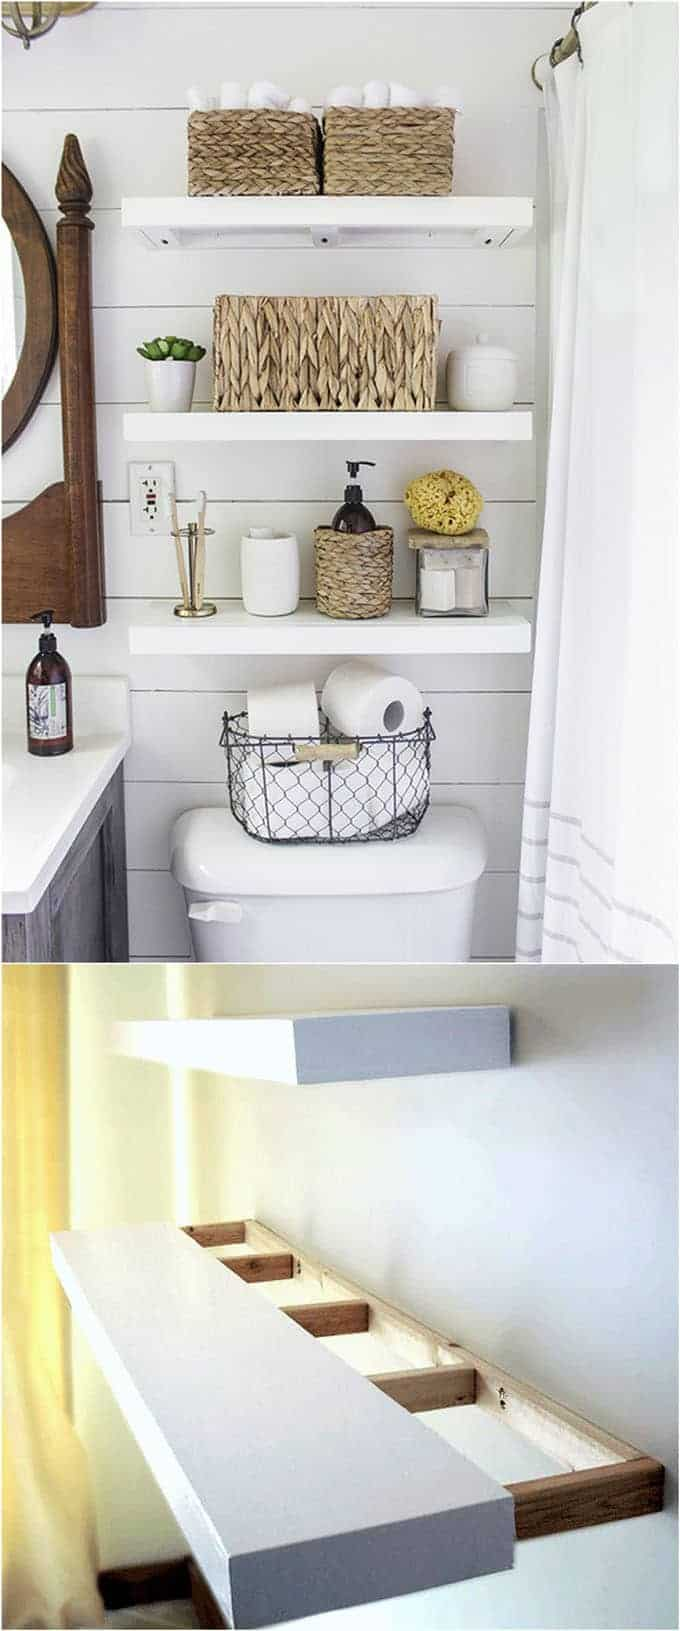 Wall shelves with hidden inner frames